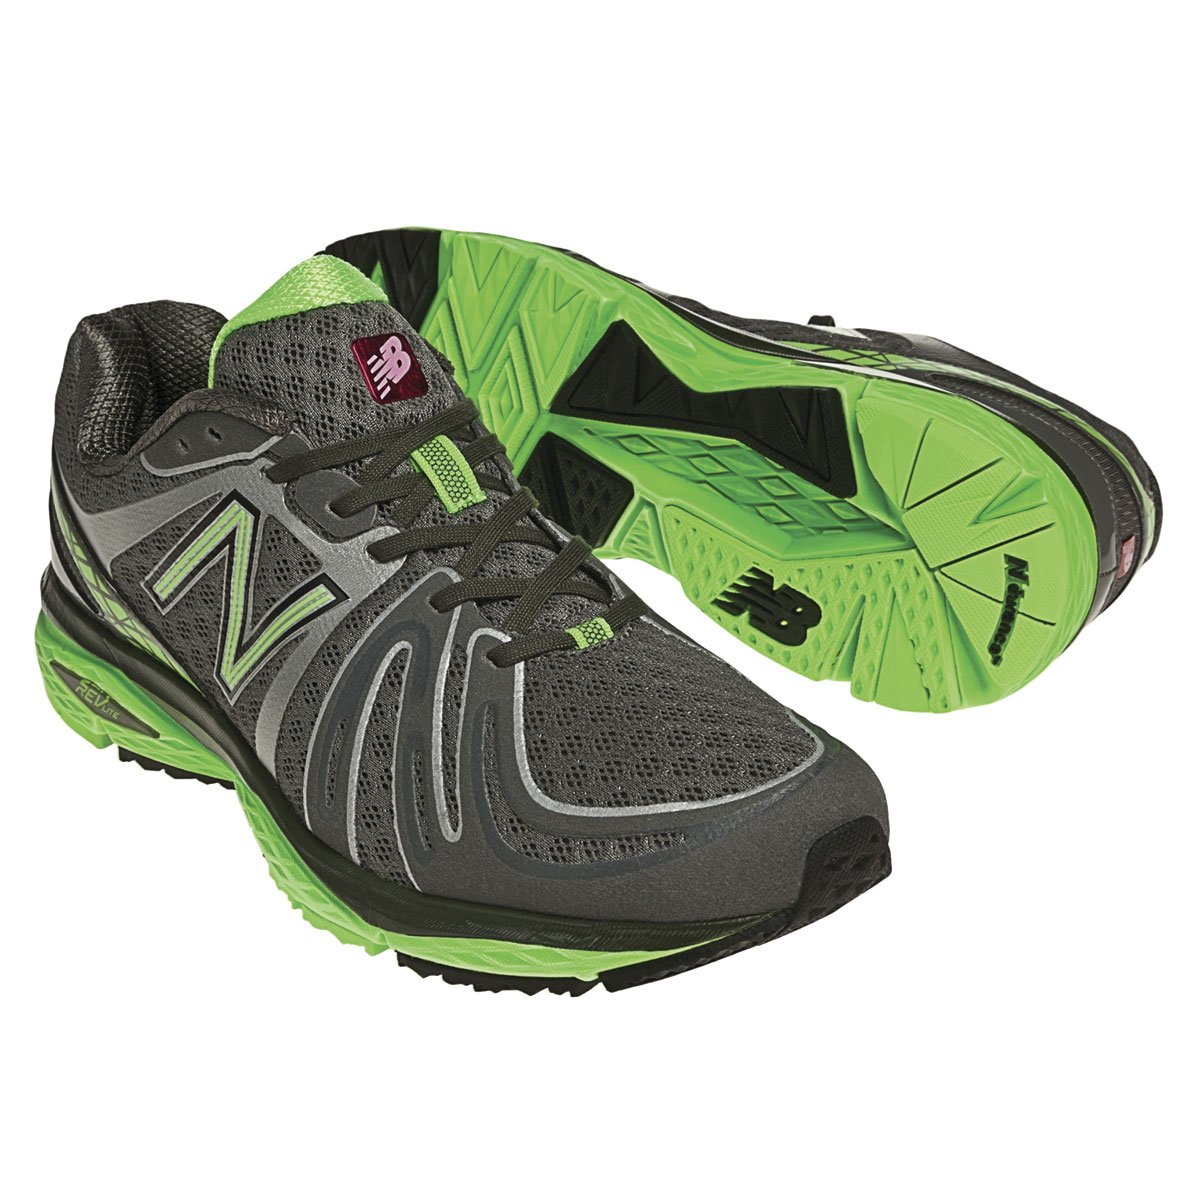 New balance New balance m790gg3 speed herre fra billigsport24